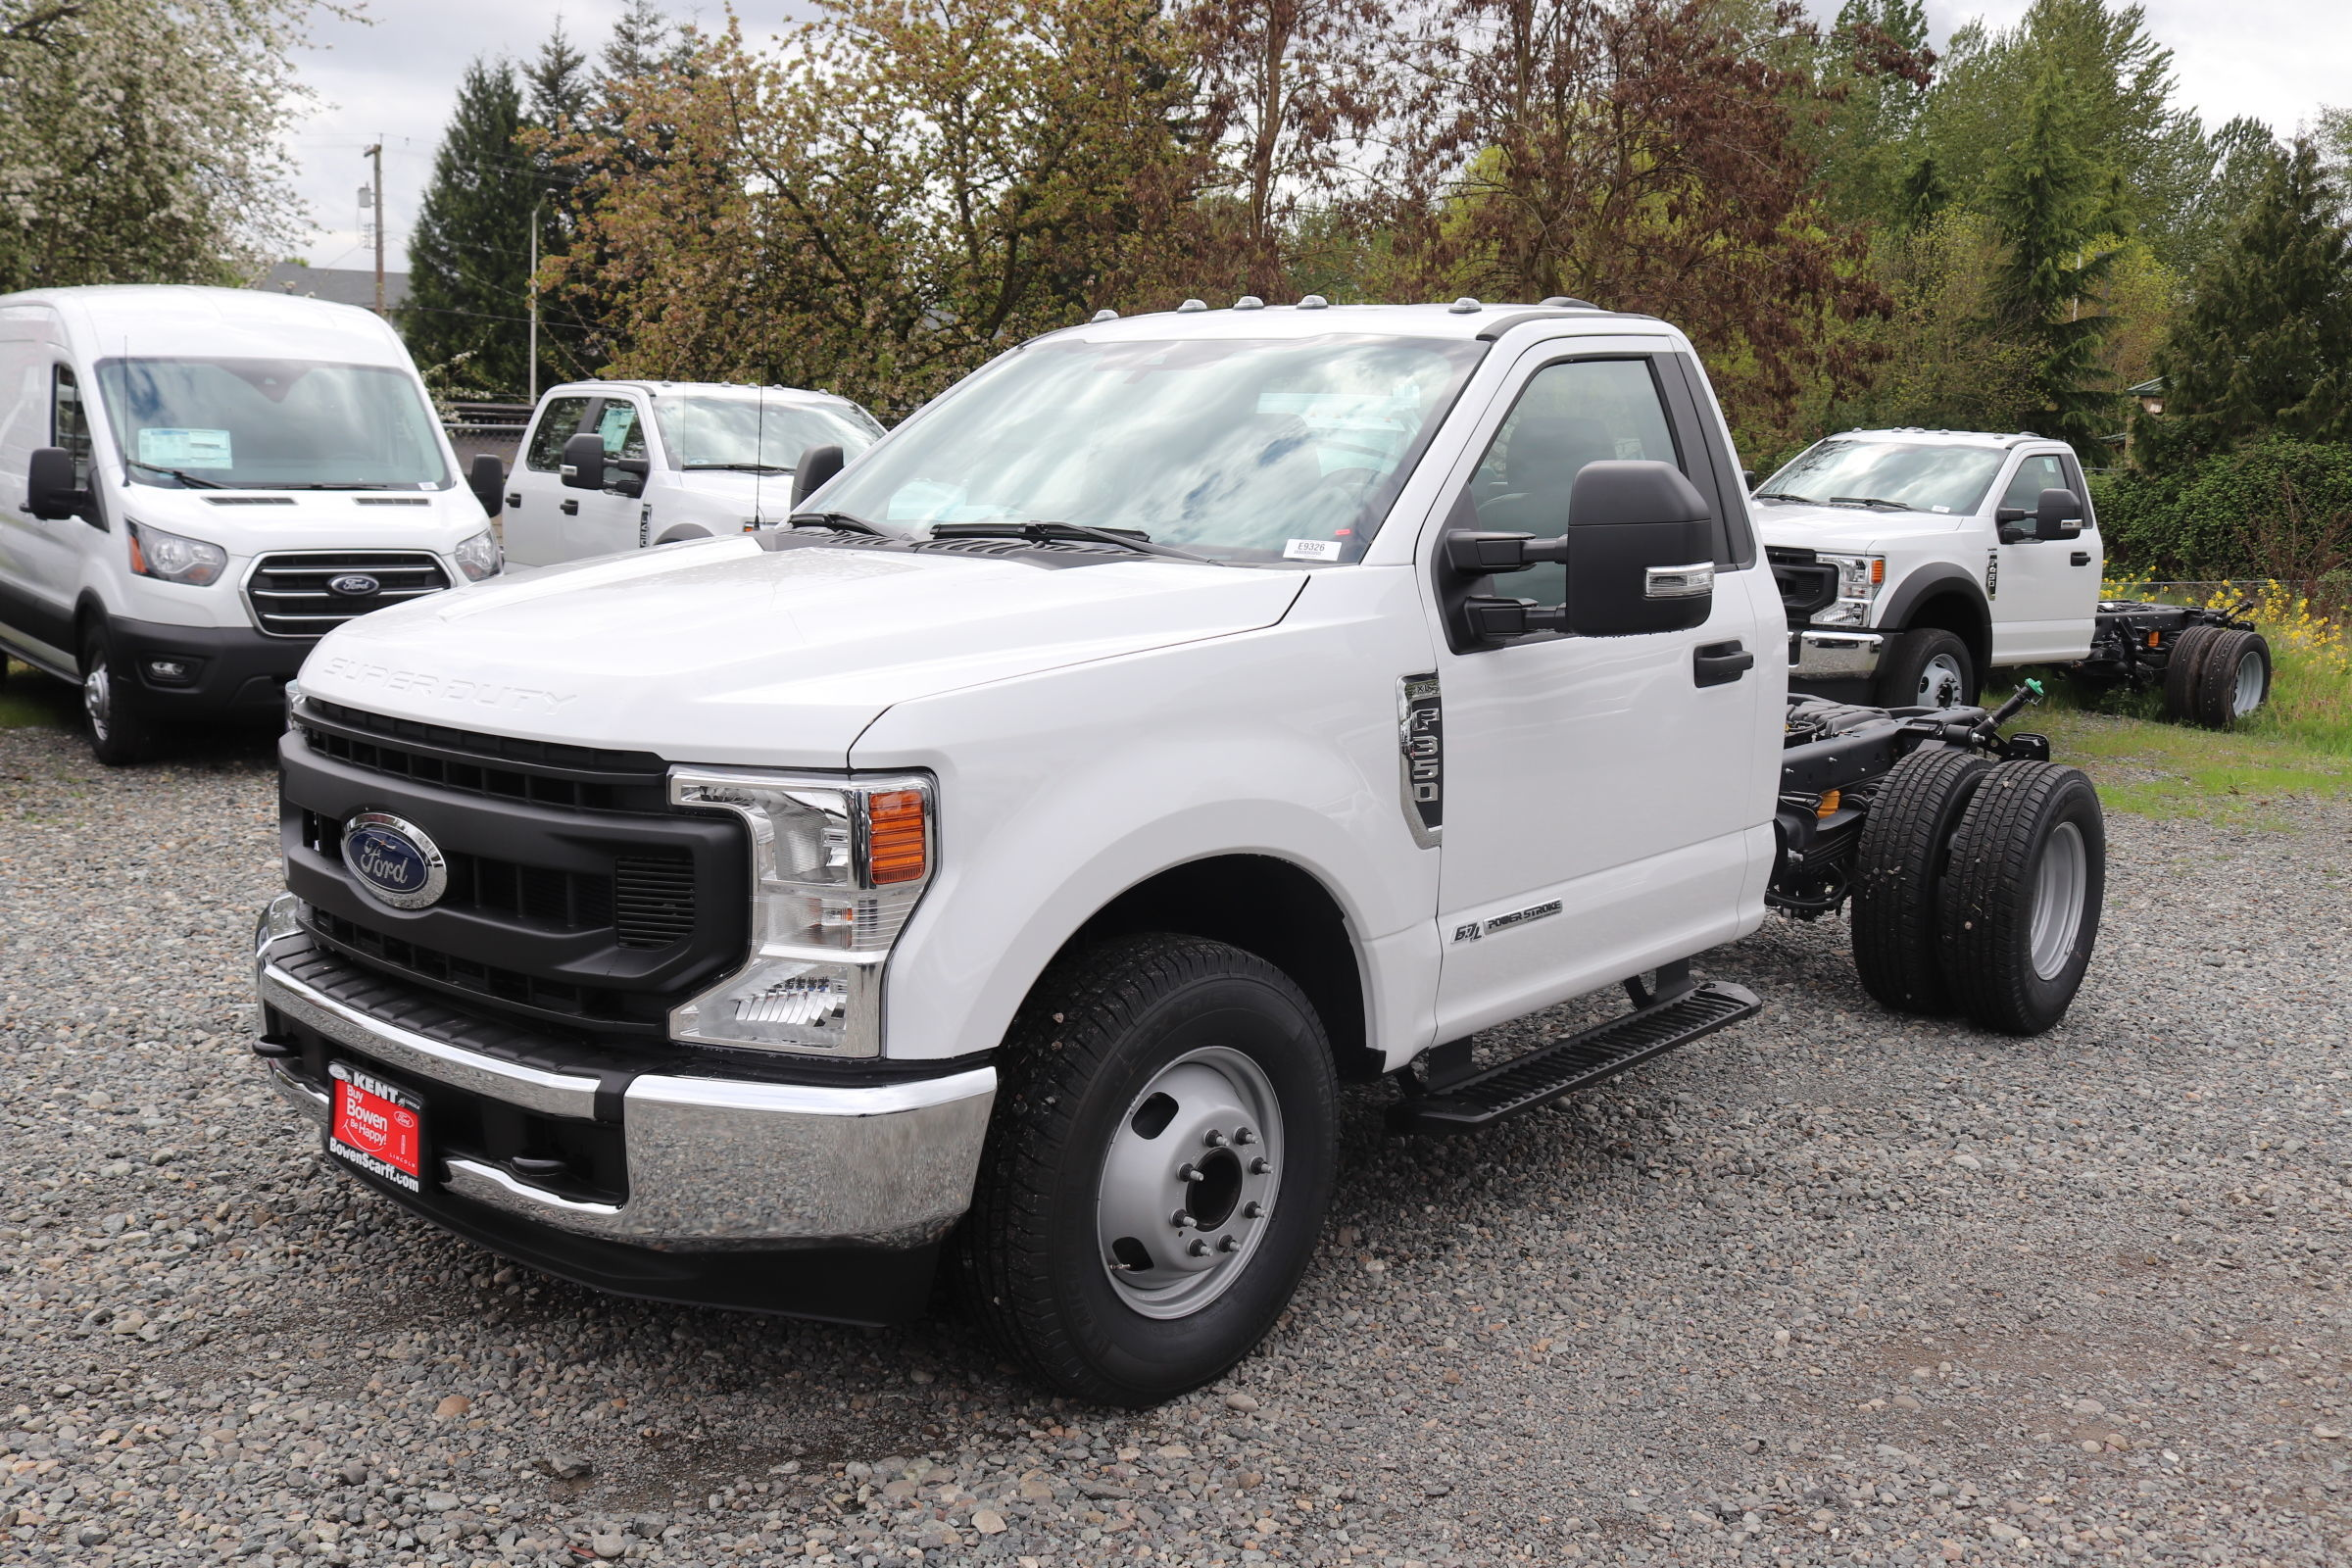 2020 Ford F-350 Regular Cab DRW 4x2, Cab Chassis #E9326 - photo 5